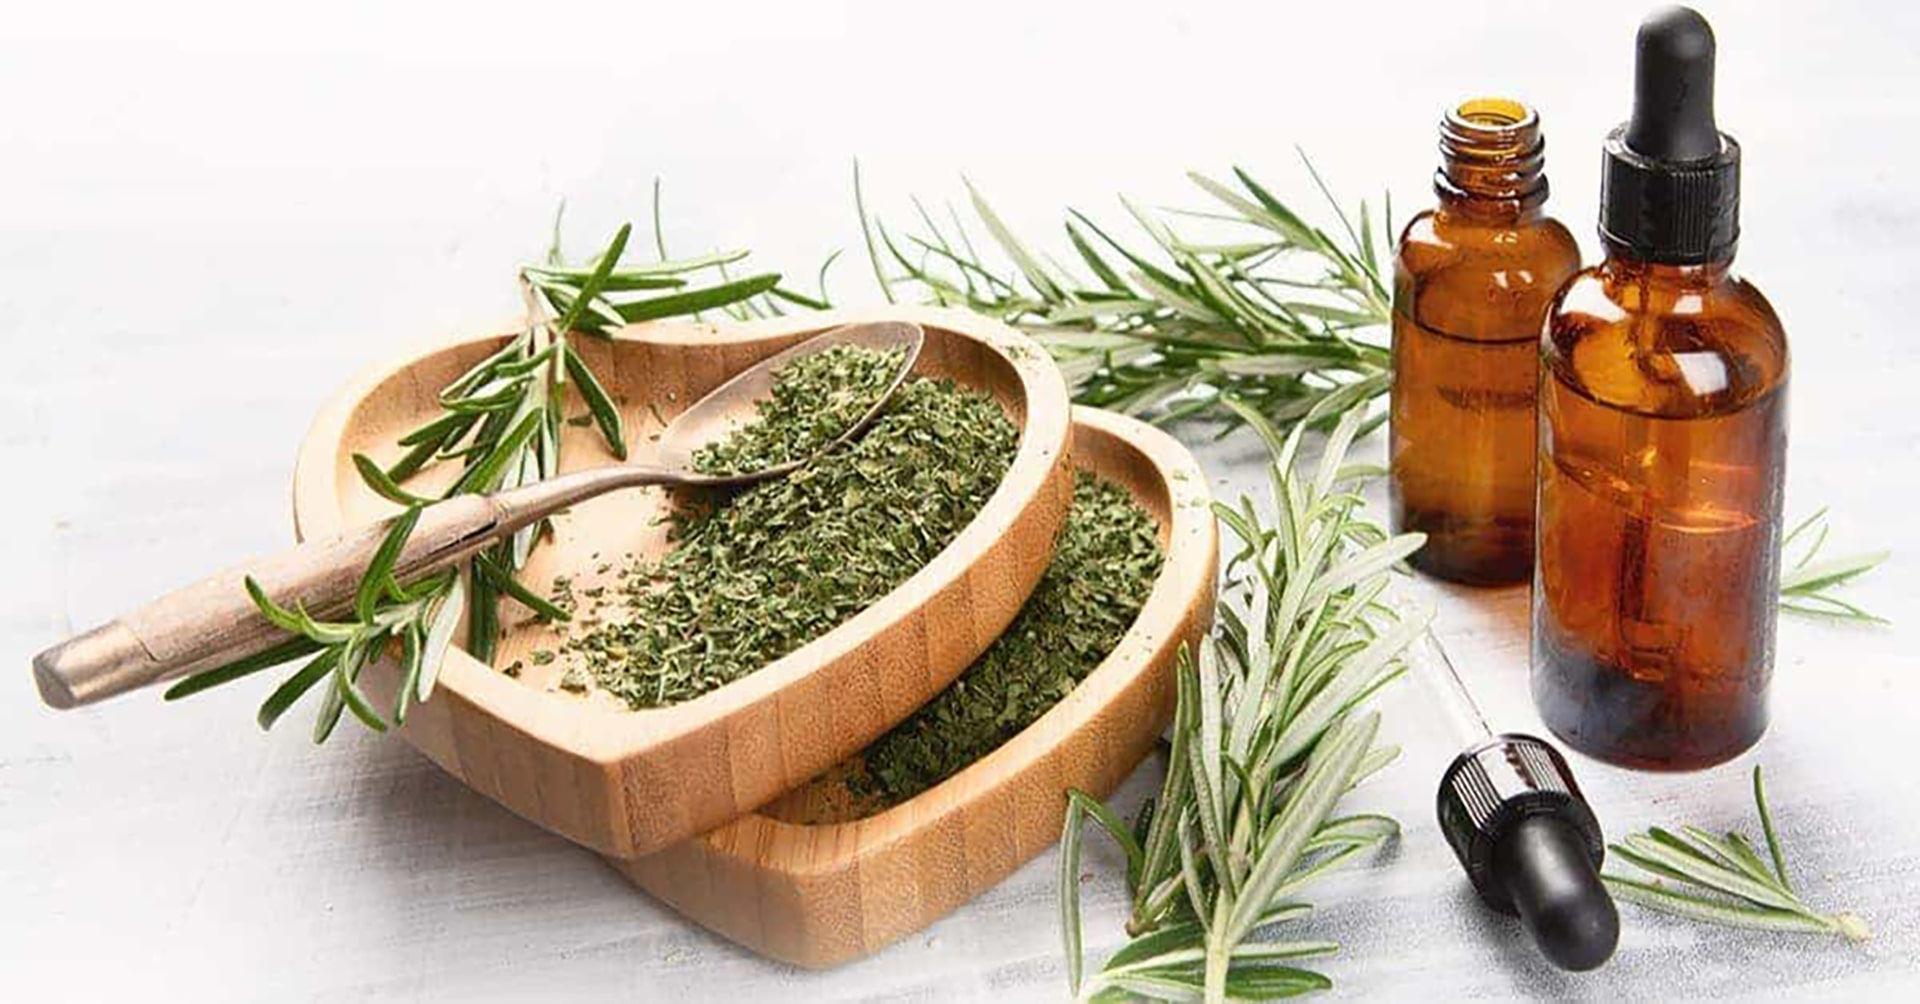 Rosemary Helps with Healthy Aging